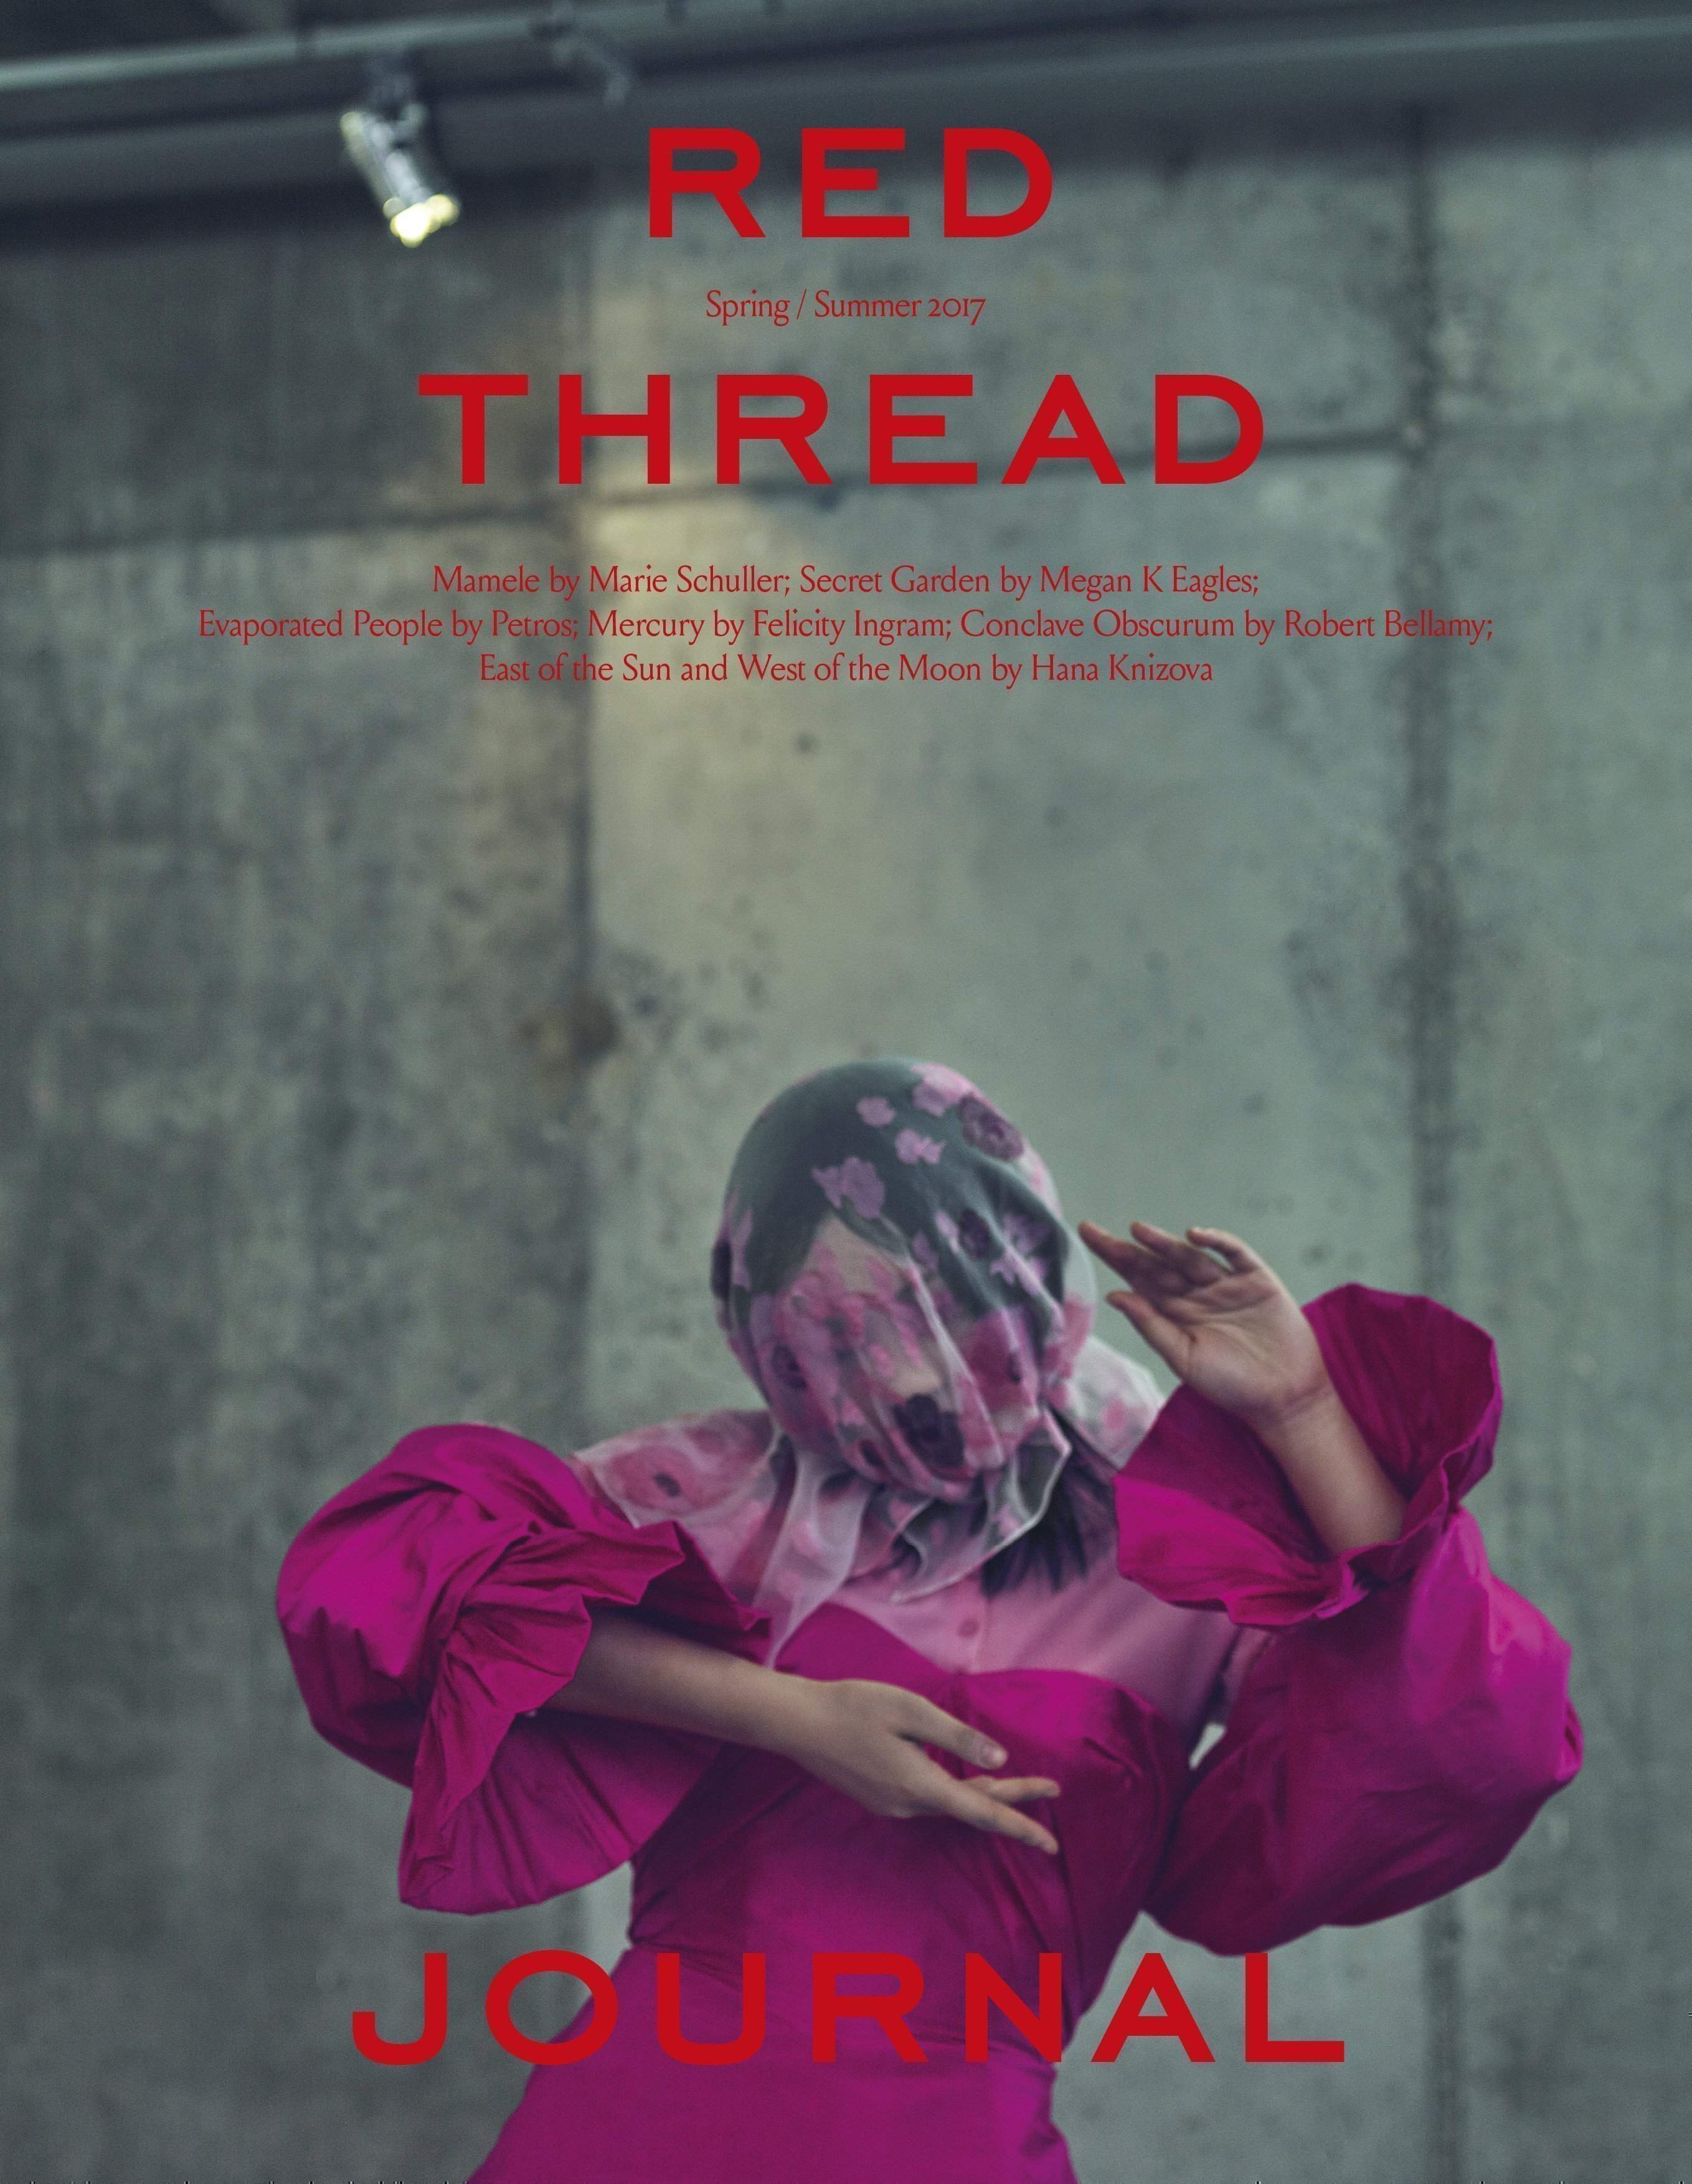 Red Thread Journal-Boutique Mags